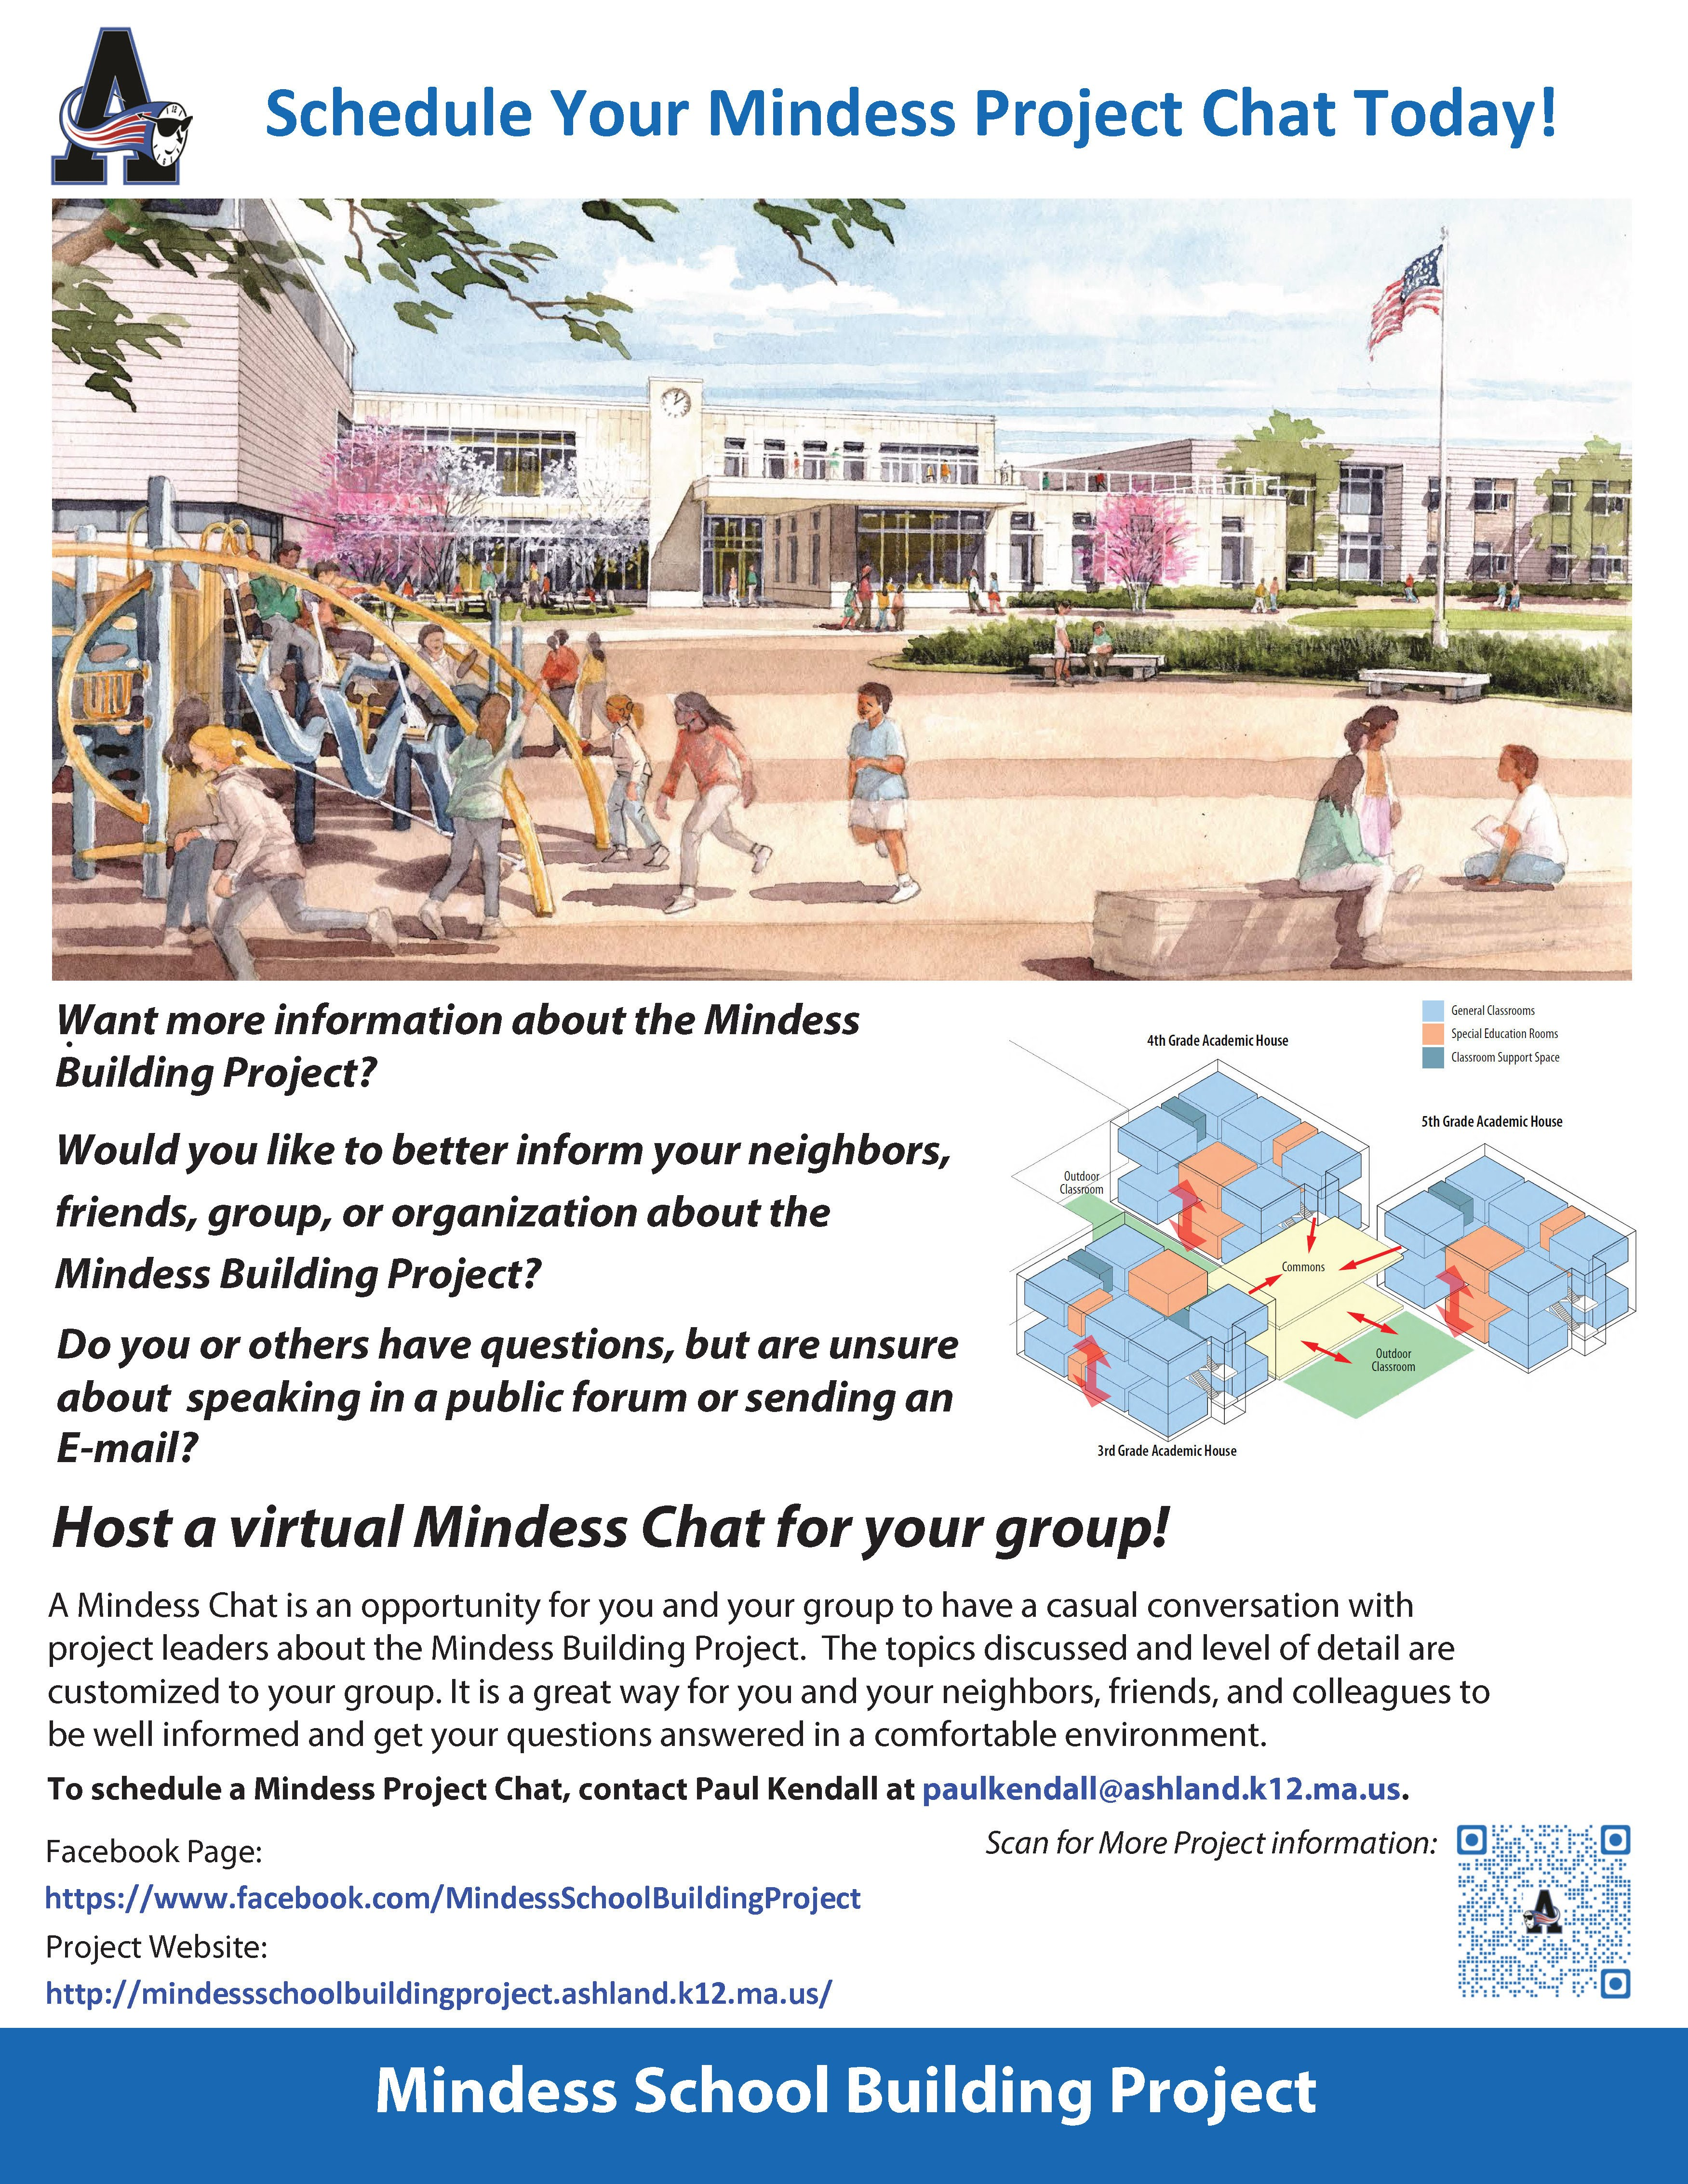 Host a Mindess Chat - Get  Up-to-Date Informatio About the Mindess School Building Project